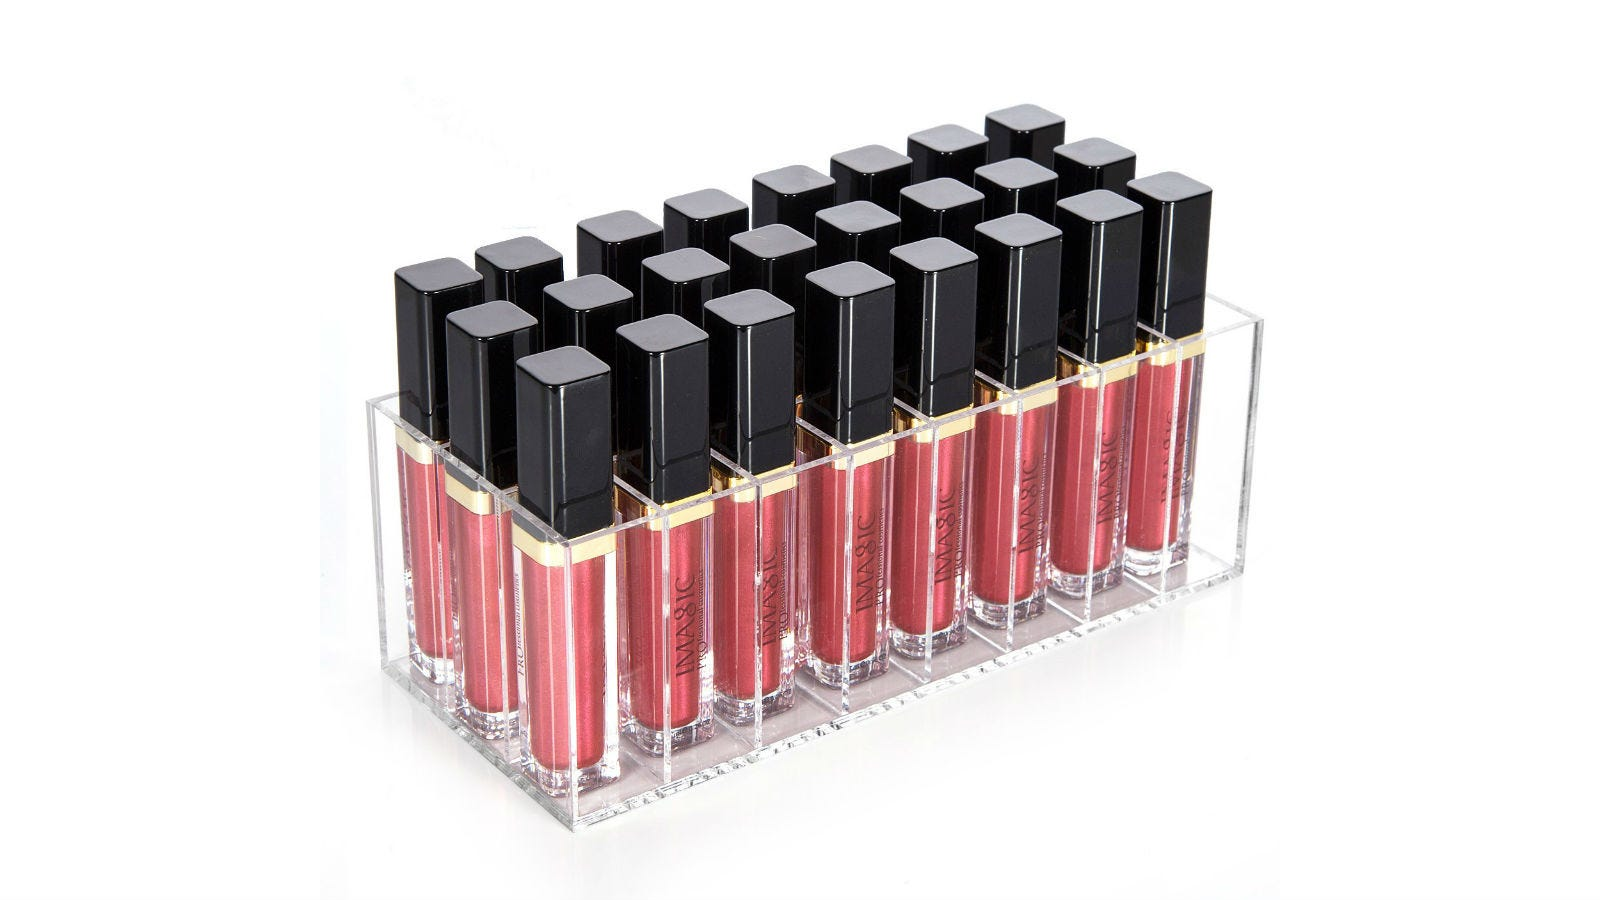 The hblife Lip Gloss Organizer filled with tubes of lip gloss.